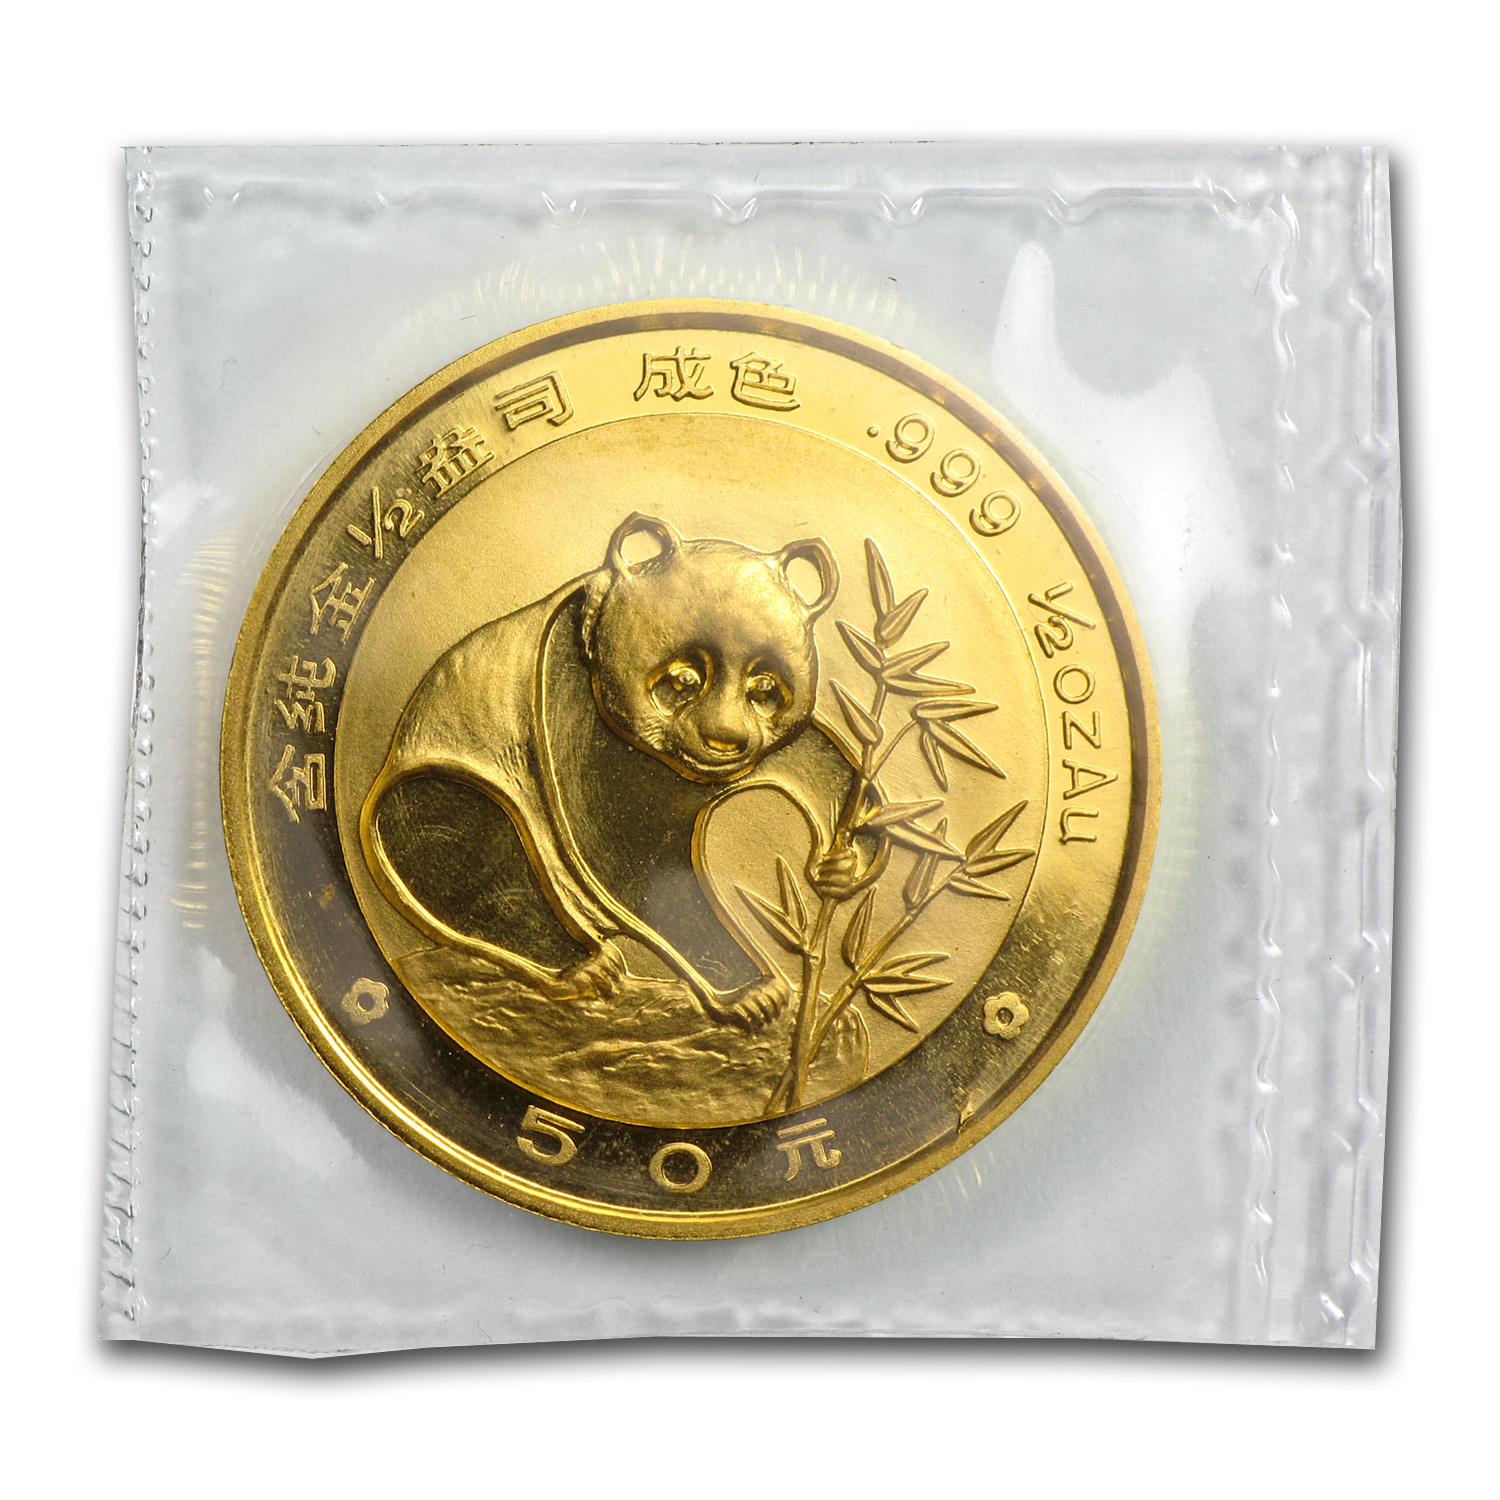 1988 1/2 oz Gold Chinese Panda BU (Sealed)